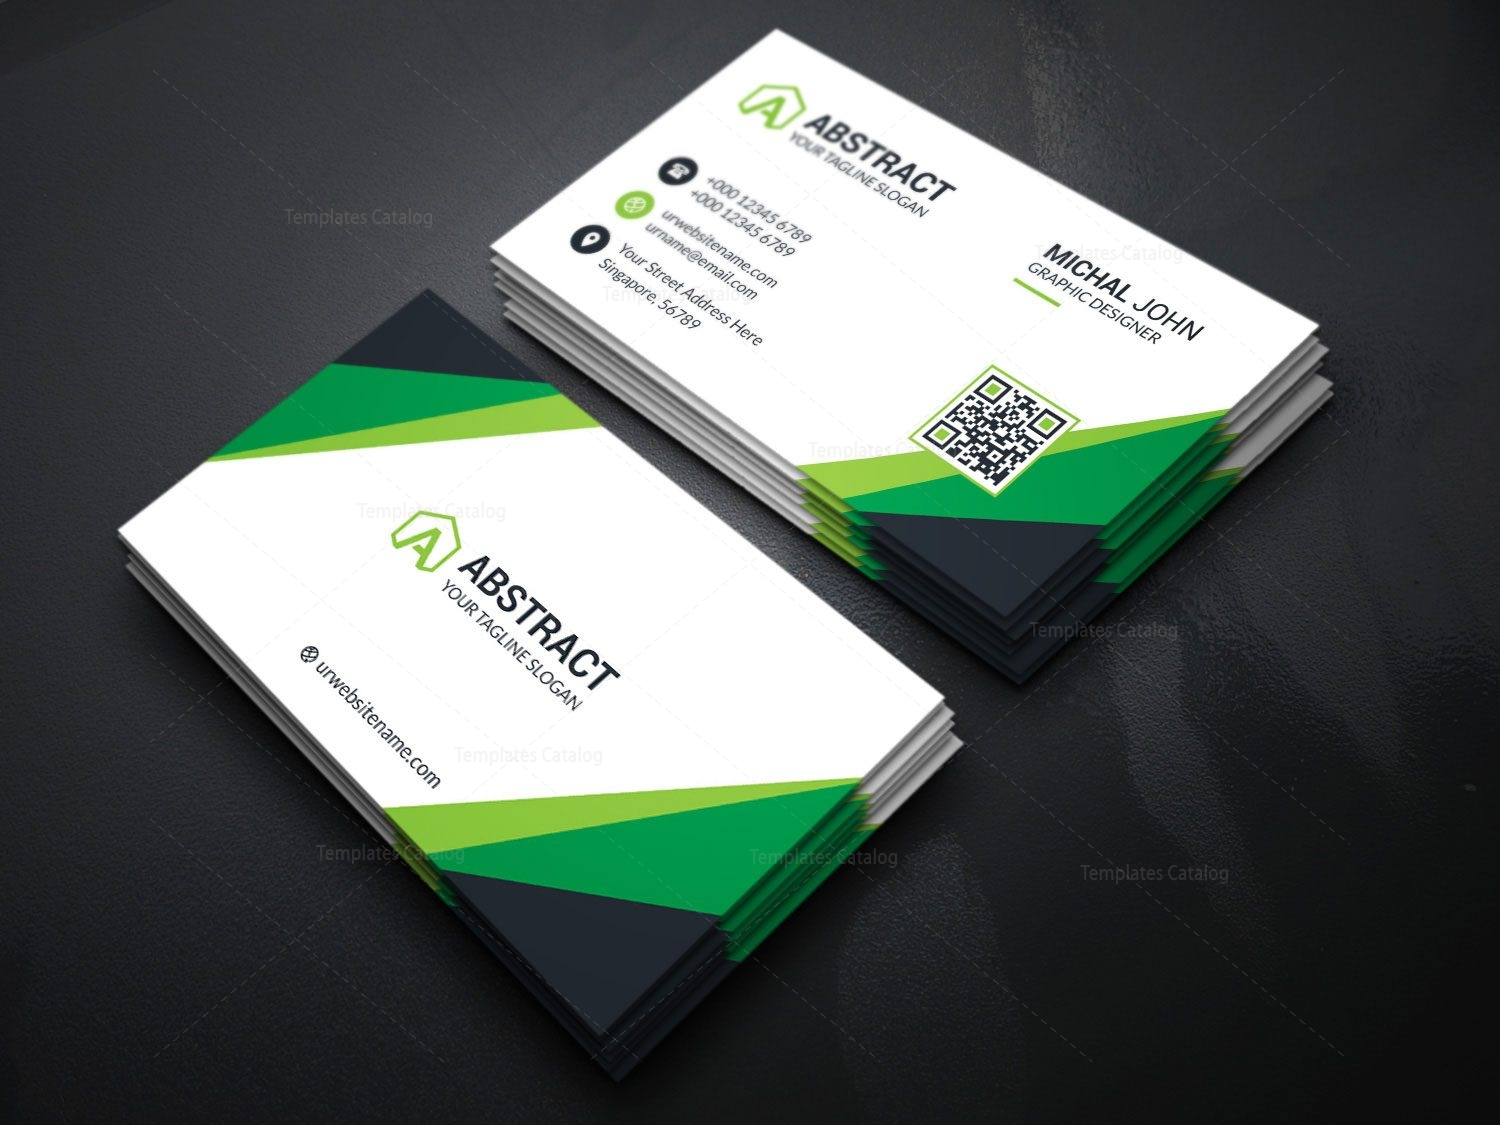 Visiting card template for companies 000175 template catalog visiting card template for companies 5 wajeb Gallery